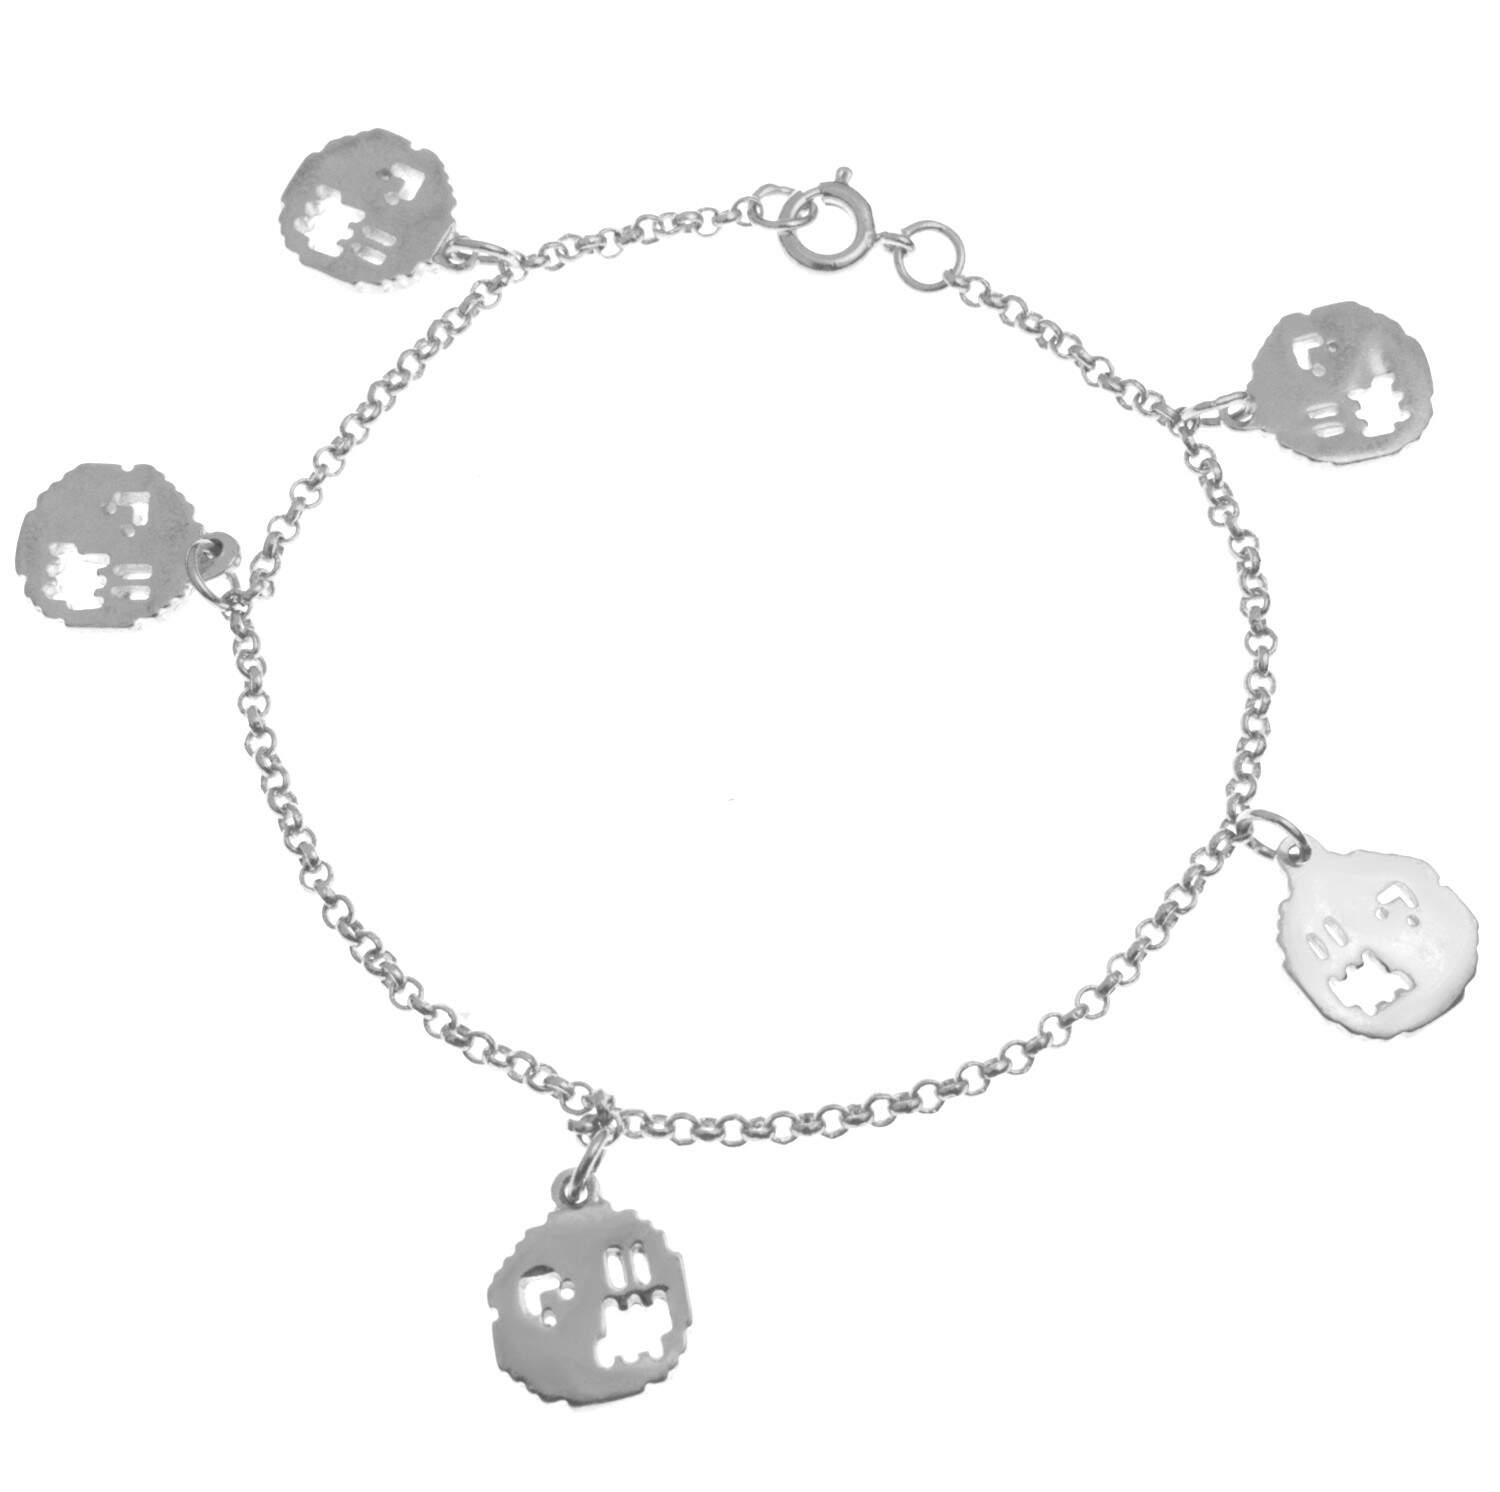 Pulseira - Fantasma do Mario - 2510